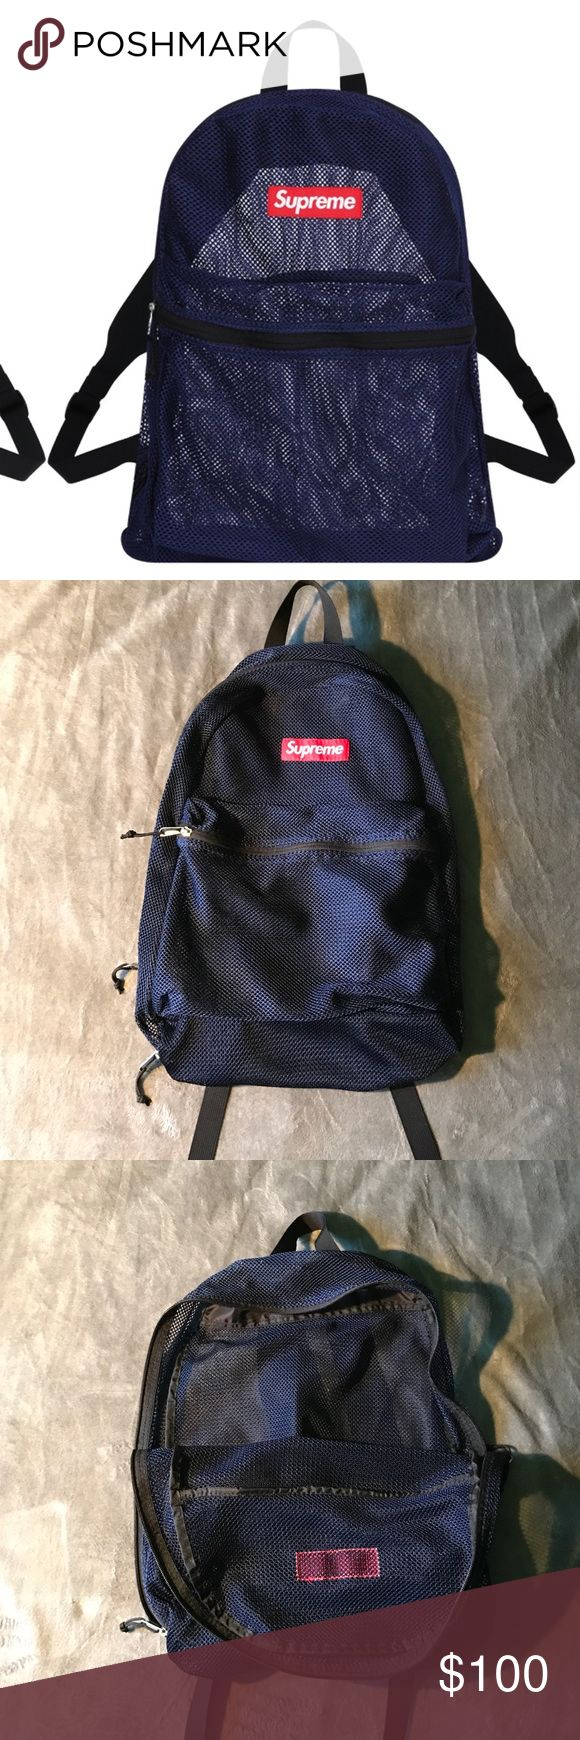 Supreme Mesh Backpack Authentic Supreme backpack from the 2016 collection, still good as new, hardly worn, good for traveling and packing light. Supreme Bags Backpacks